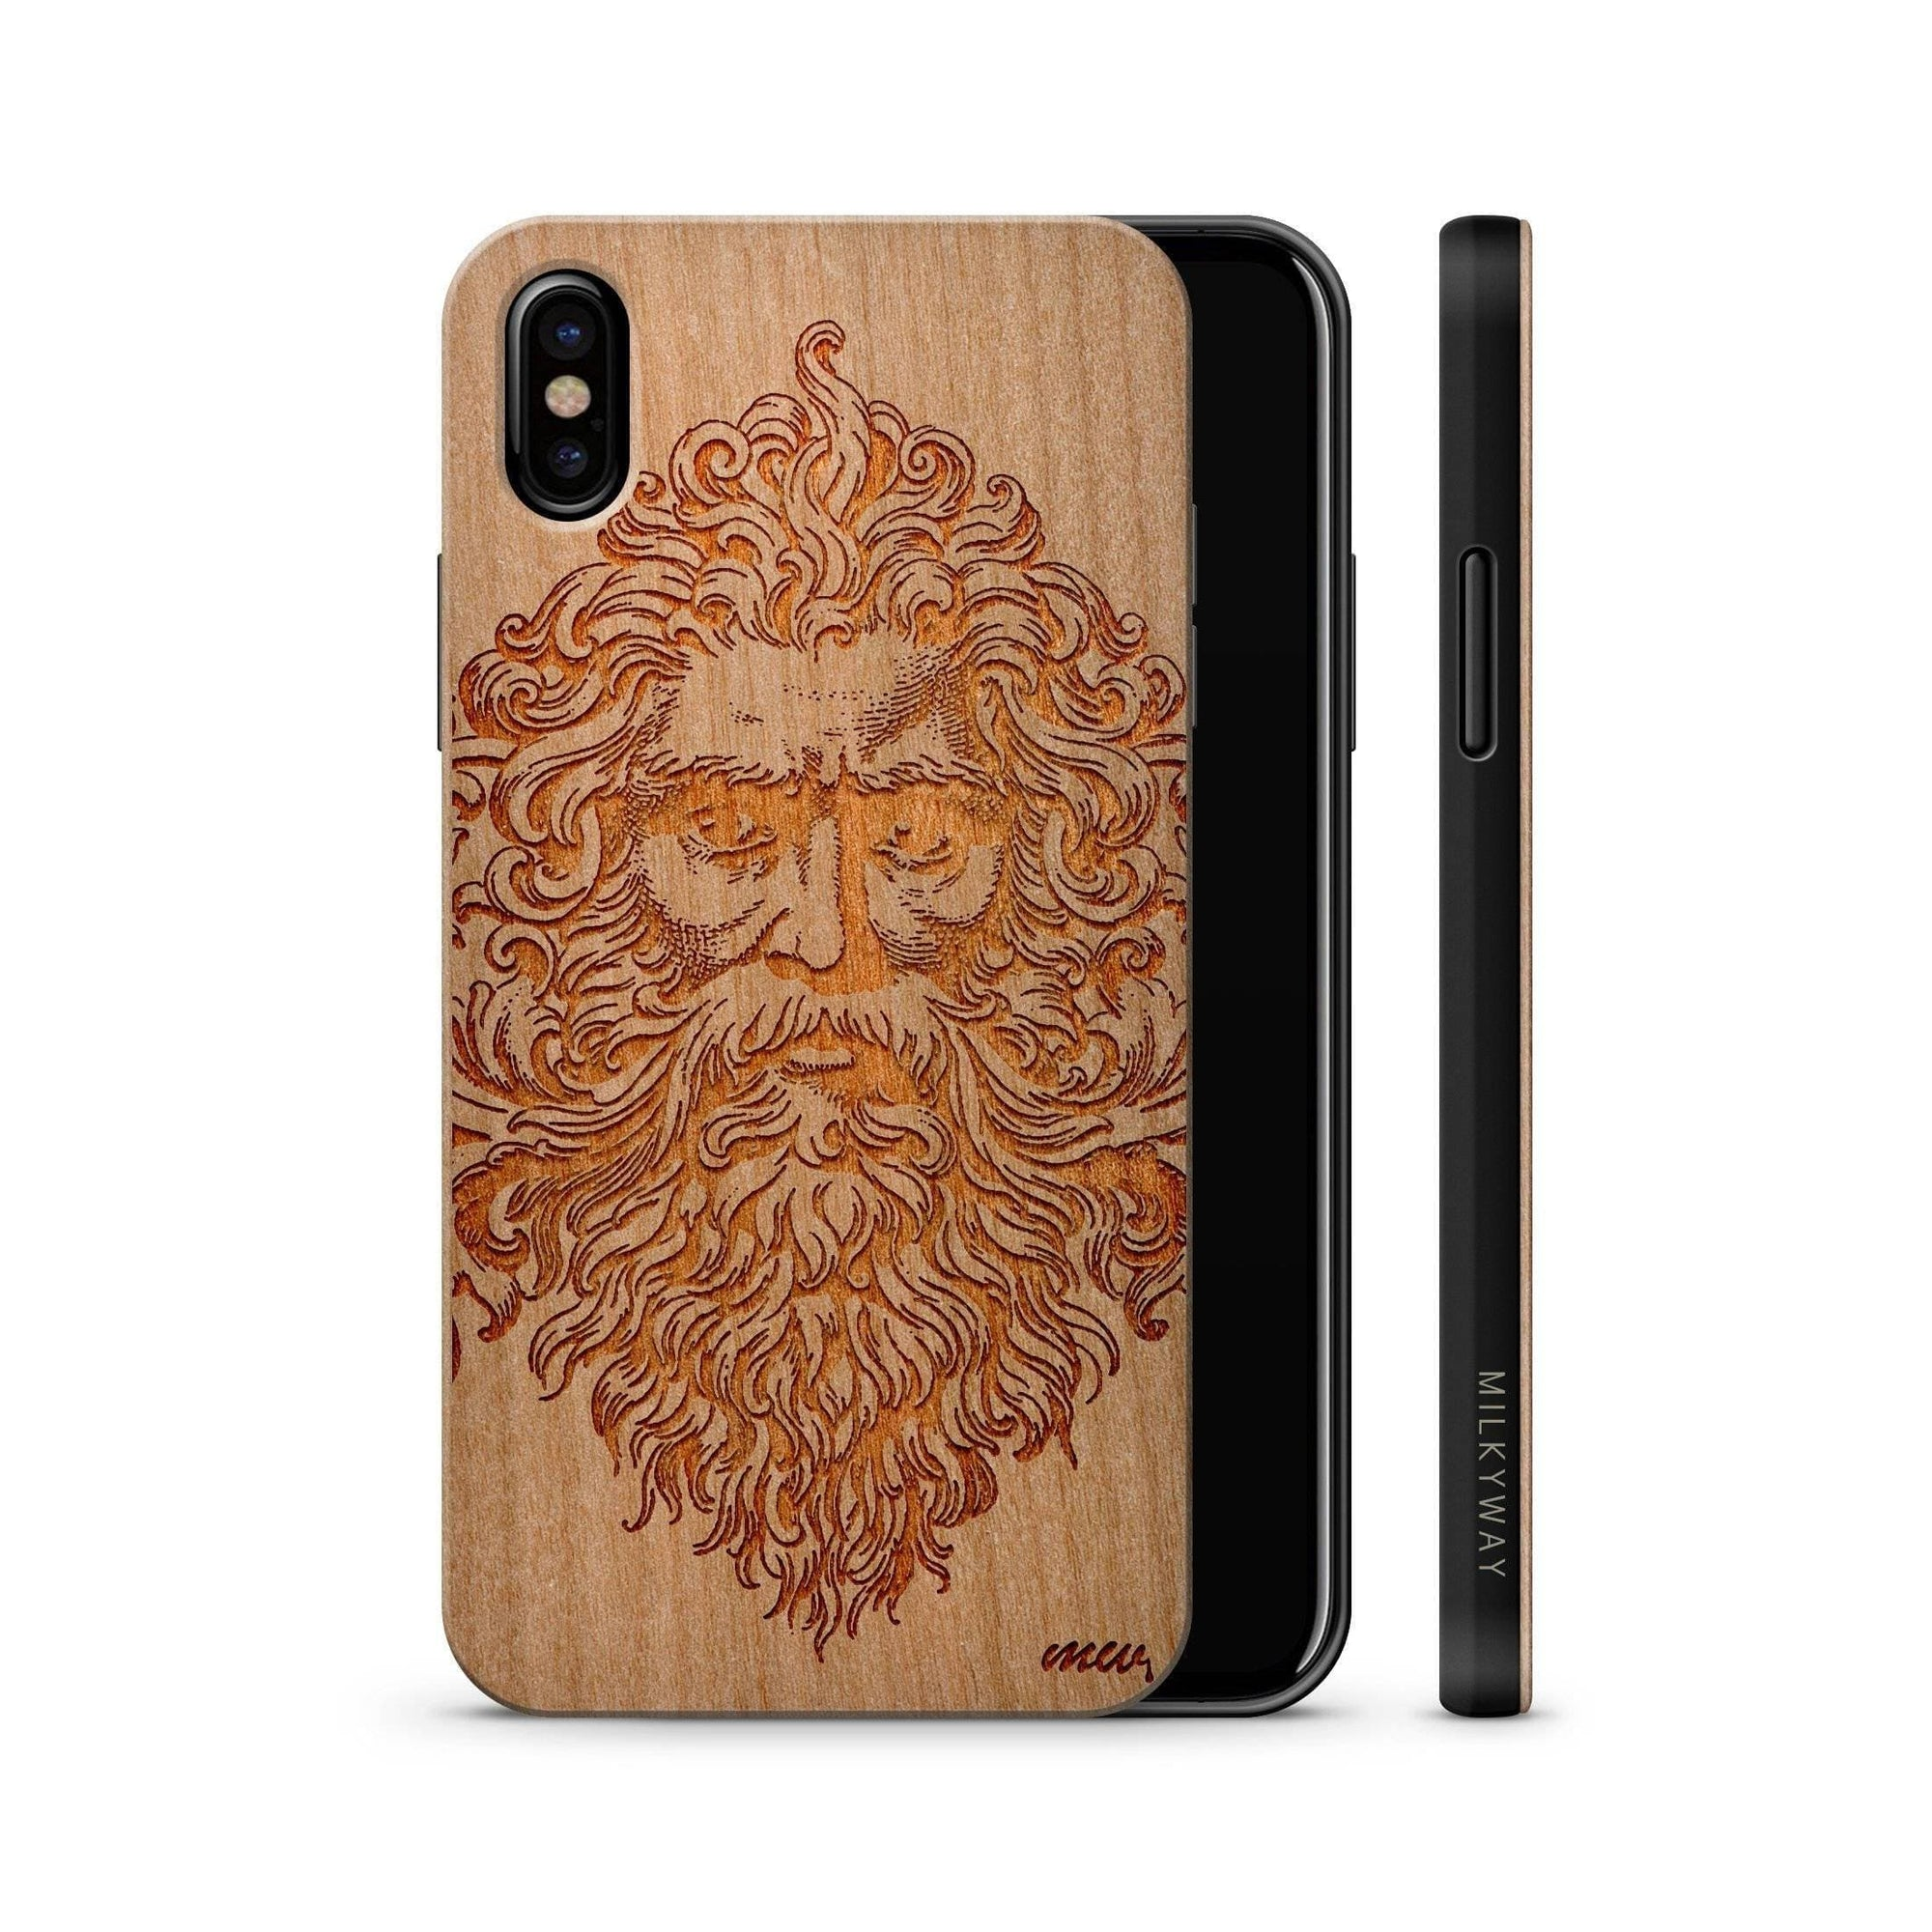 Ancient Greek God Zeus iPhone X Wood Case Ancient Treasures Ancientreasures Viking Odin Thor Mjolnir Celtic Ancient Egypt Norse Norse Mythology